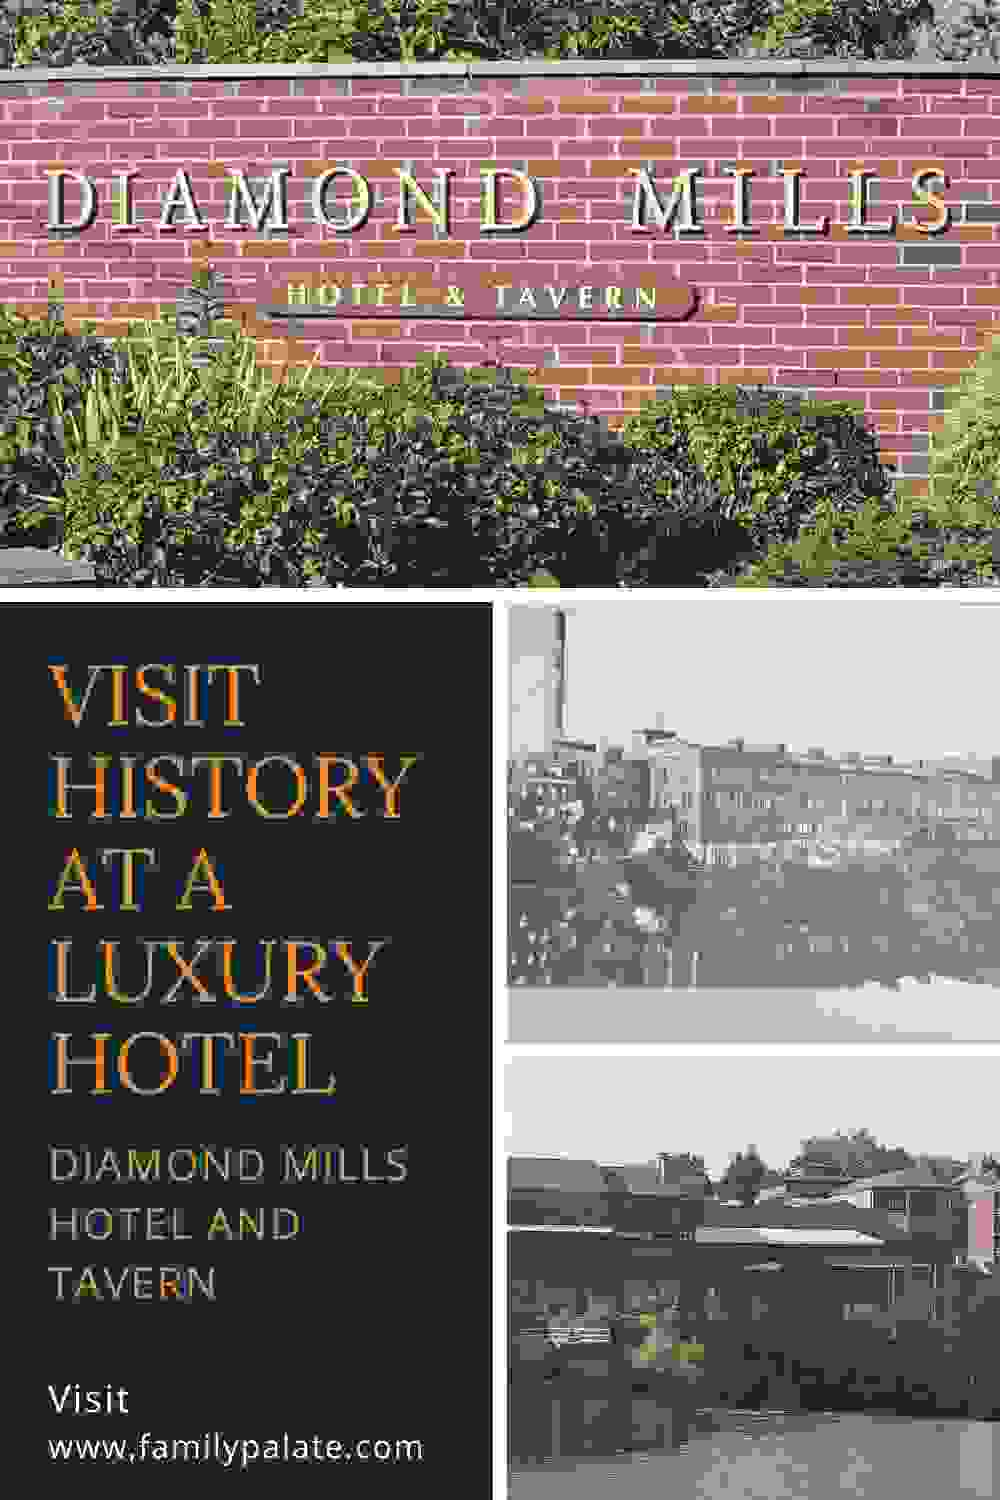 diamond mills hotel saugerties ny, saugerties ny hotels, diamond mills menu, hotels near me